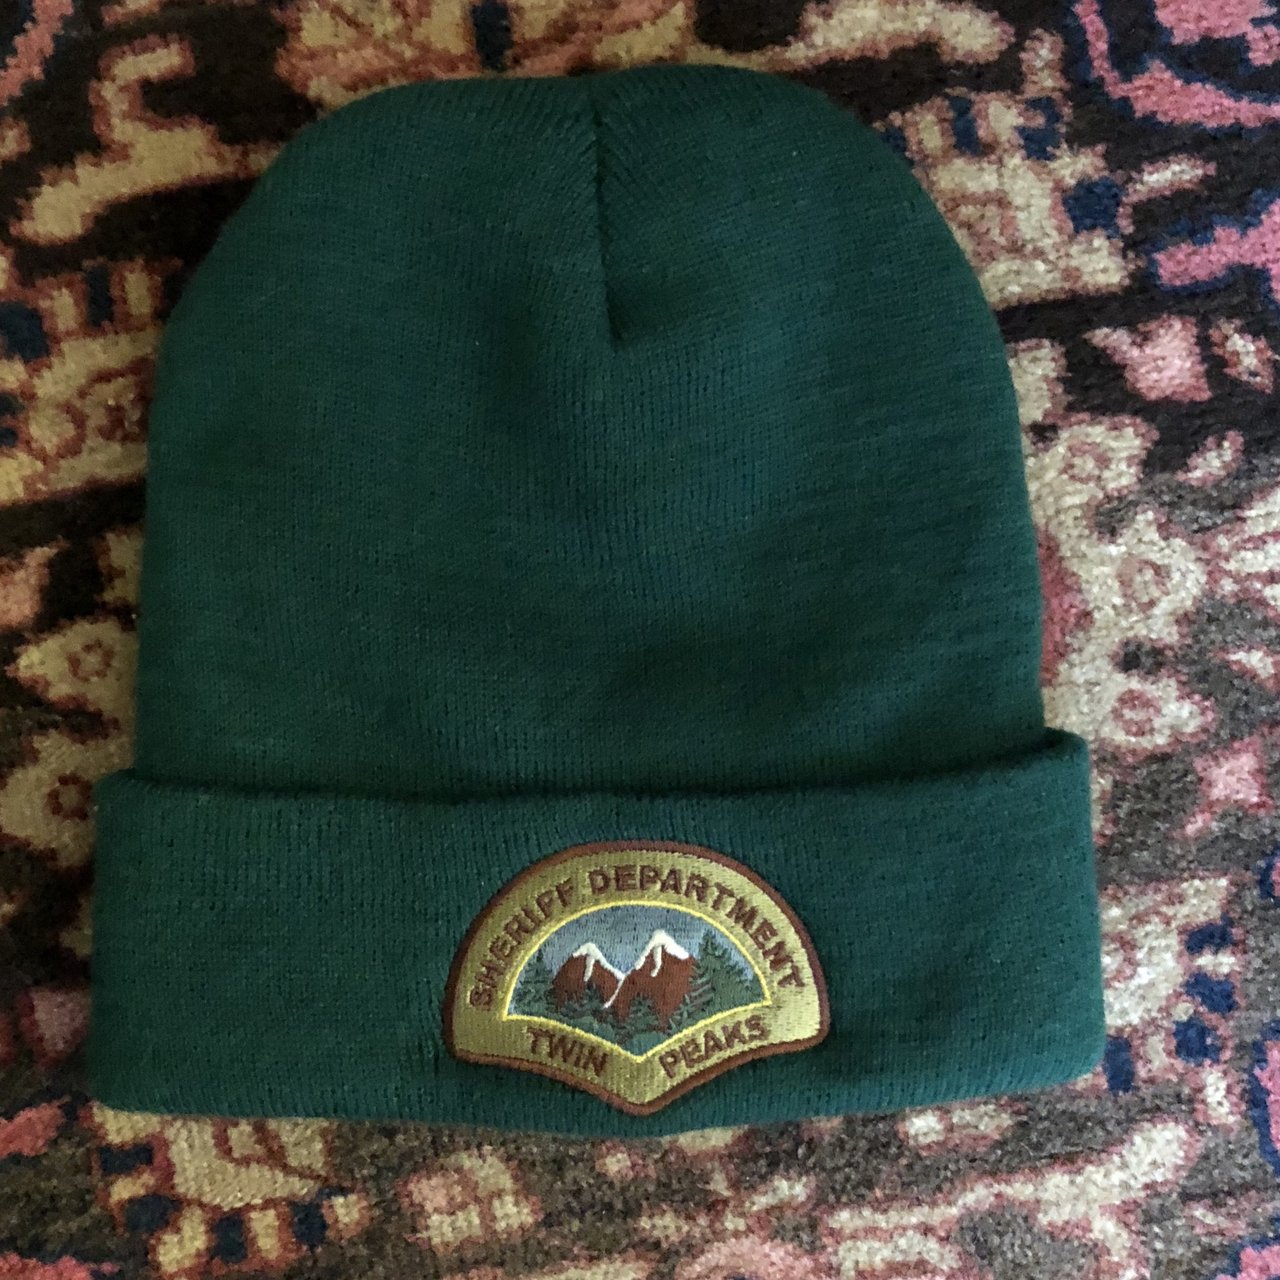 8247859759b Twin peaks sheriff department hat. From this pop up they had - Depop